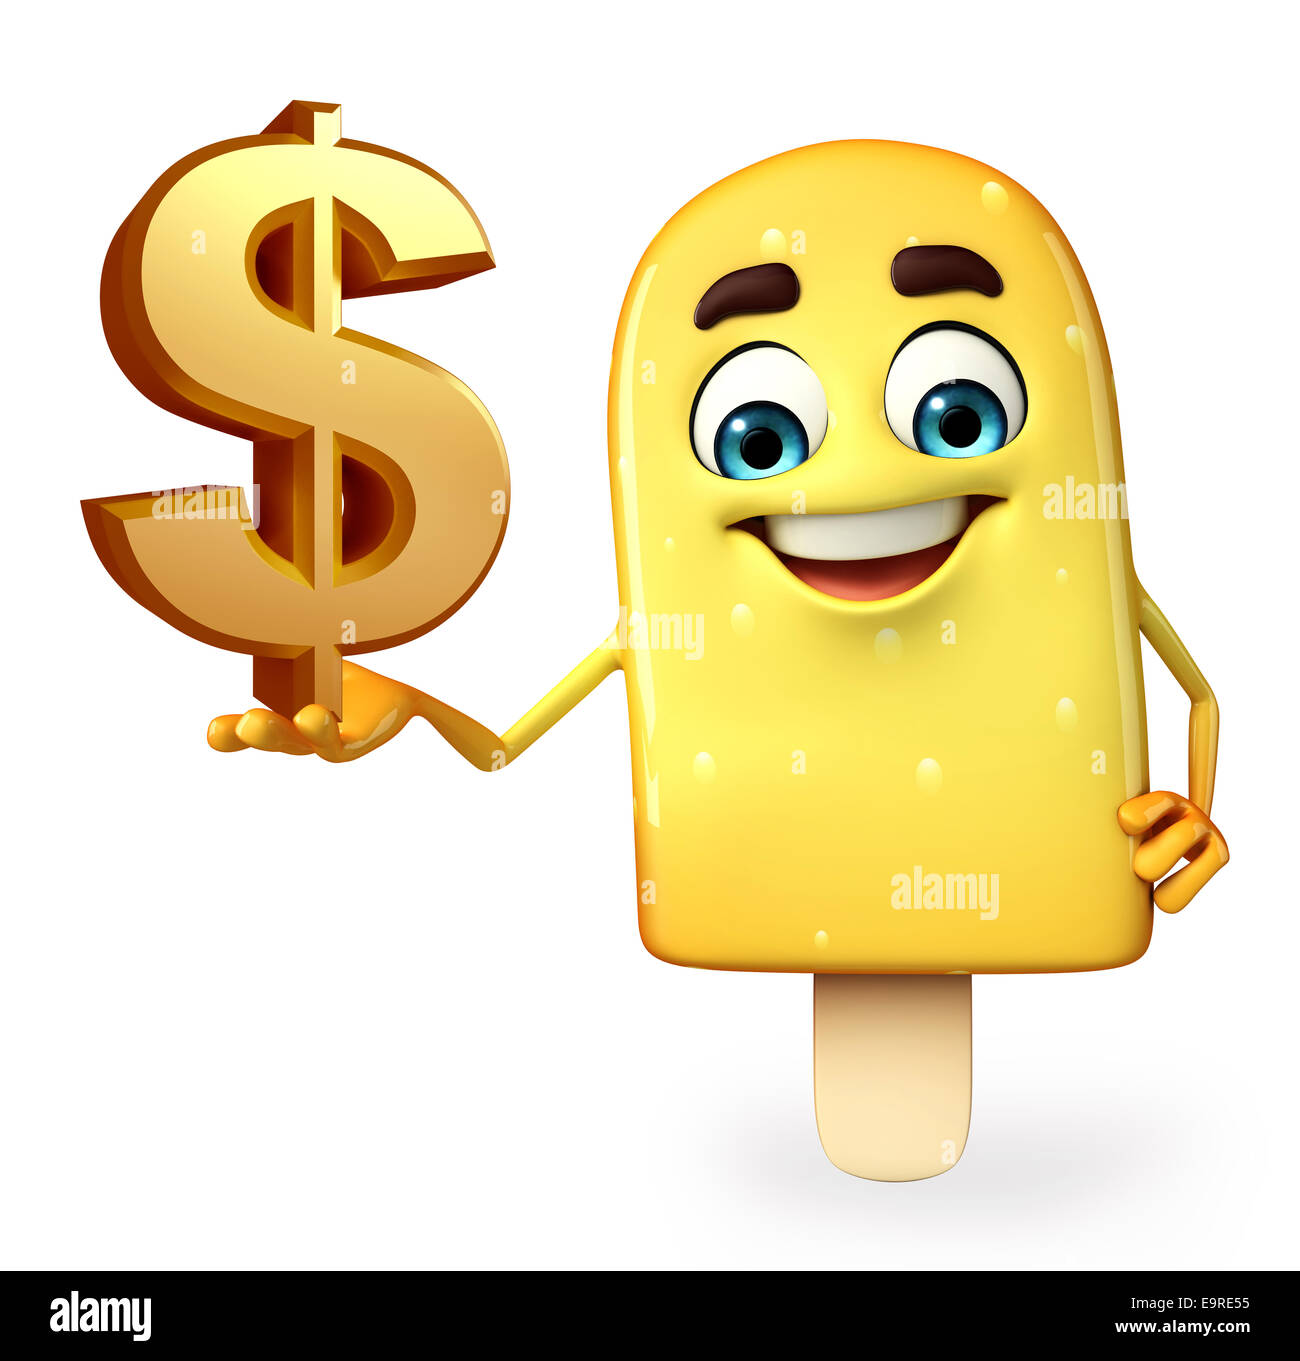 Cartoon Character of Candy with dollar sign Stock Photo